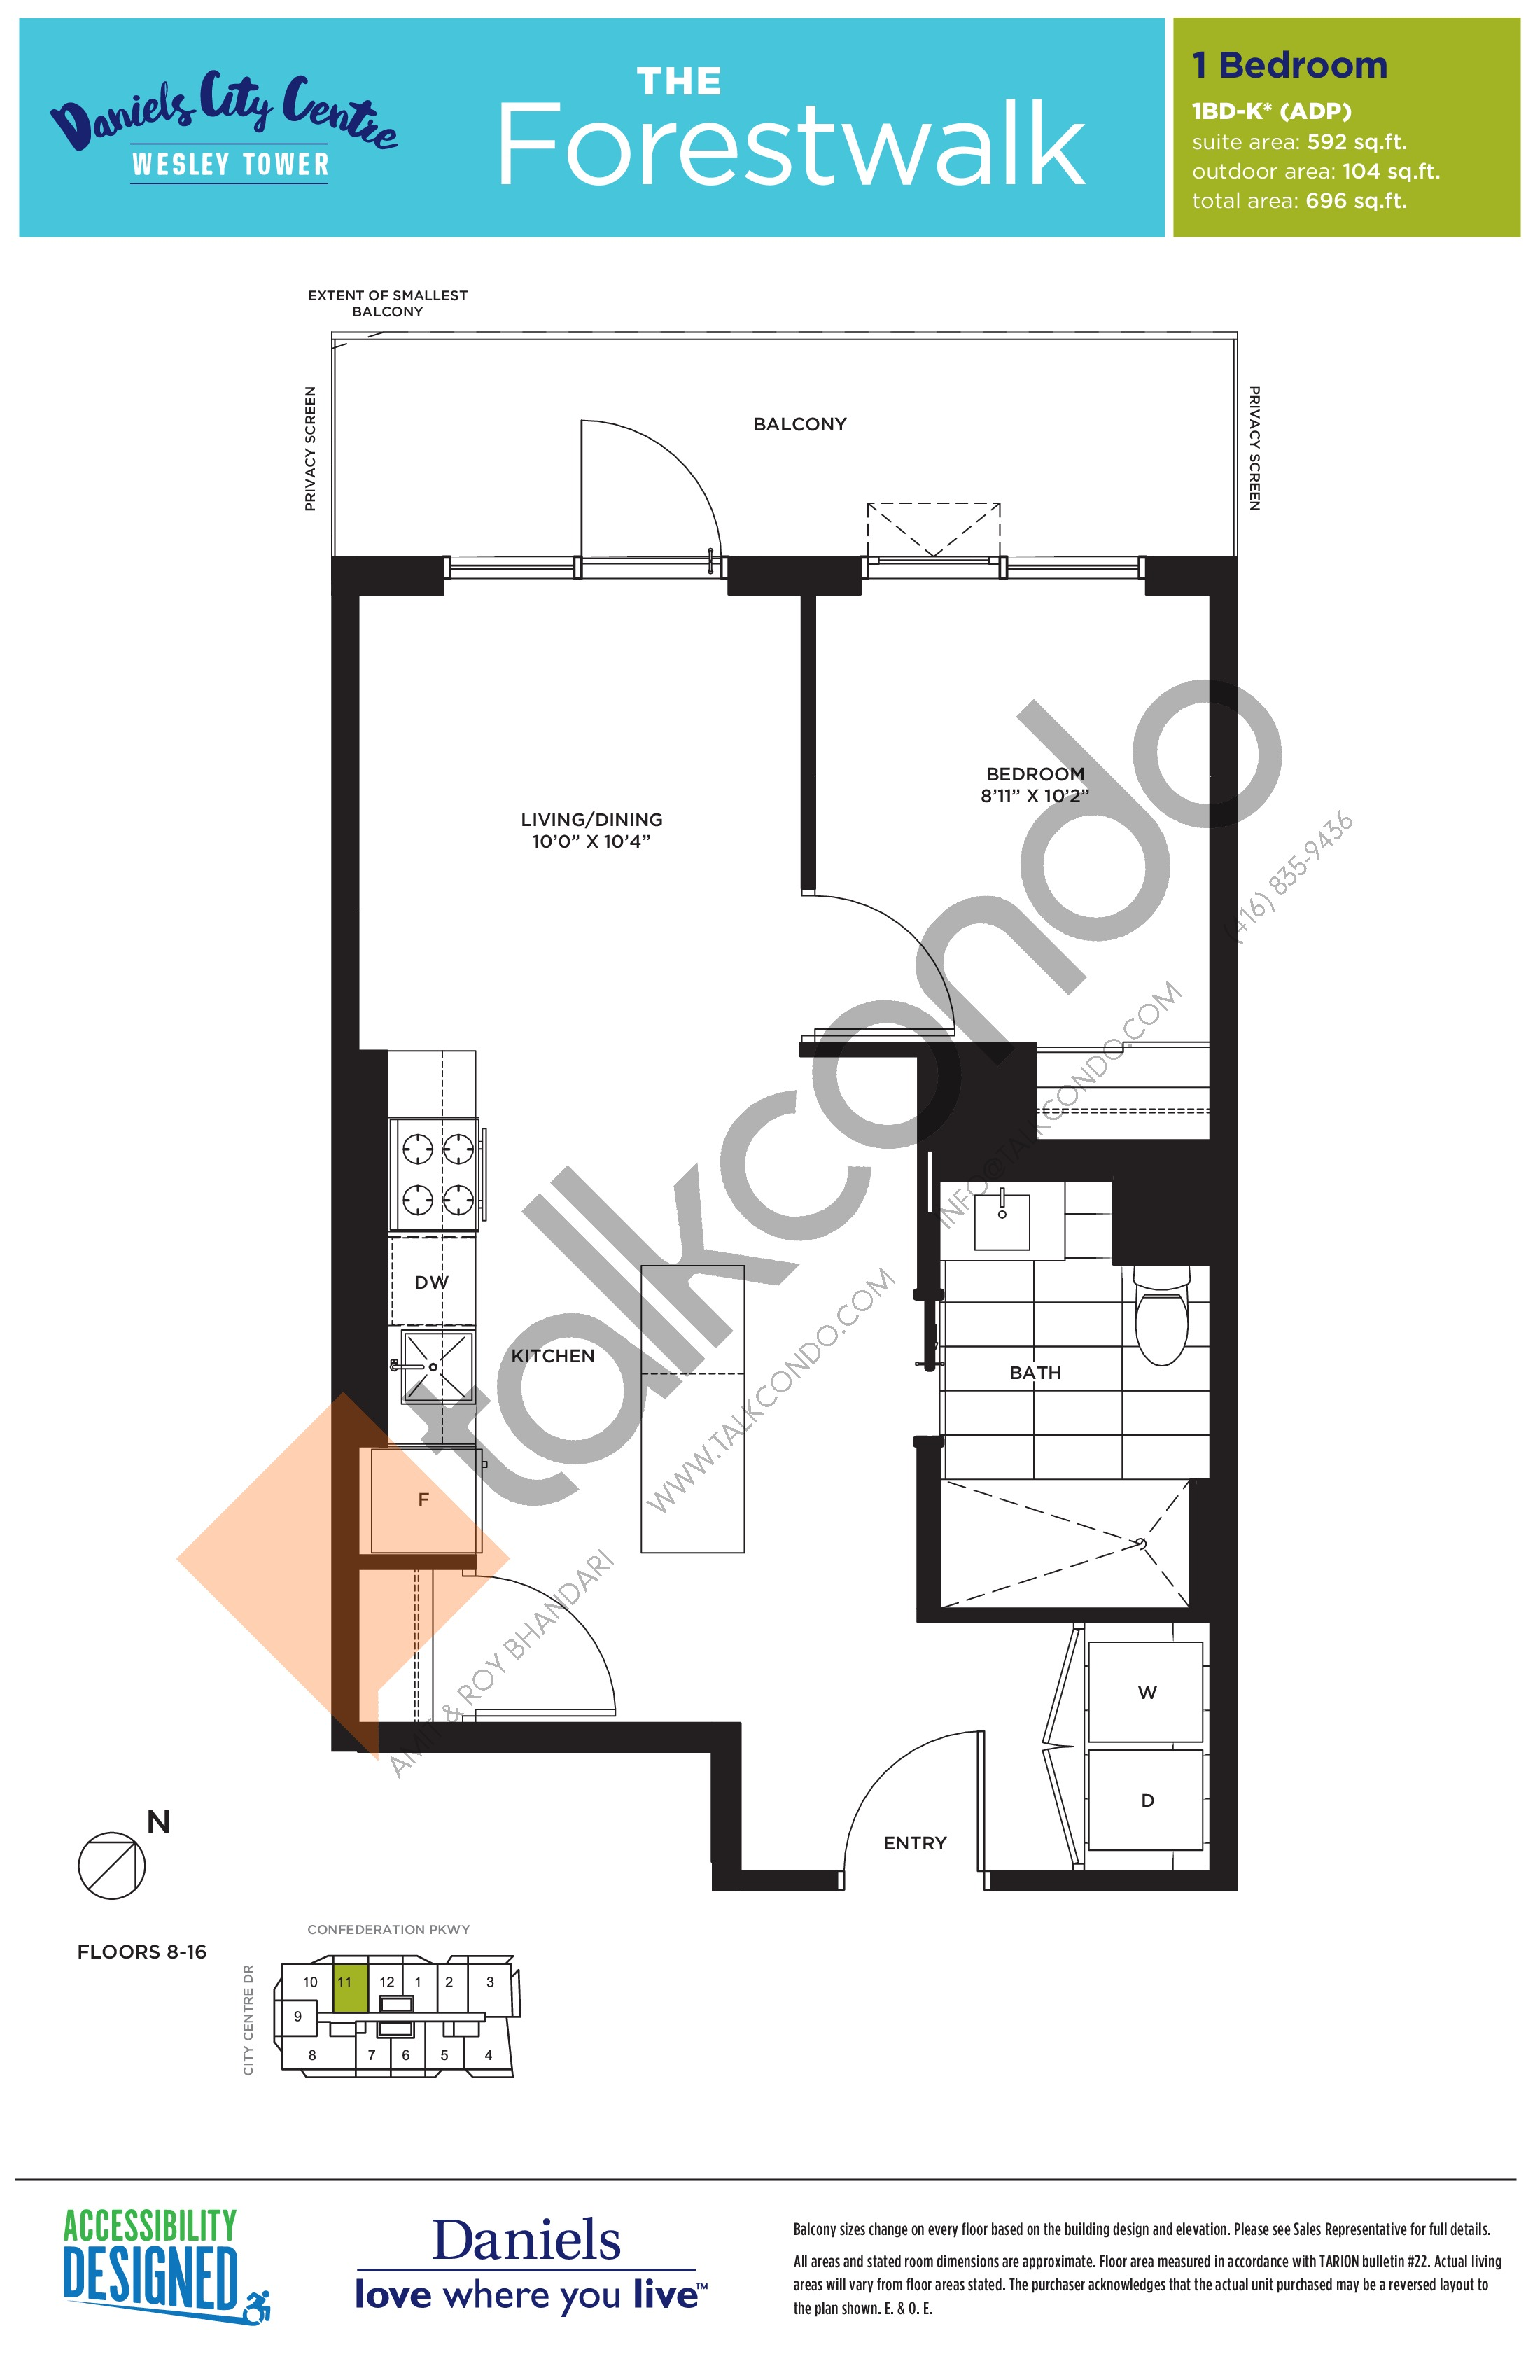 The Forestwalk Floor Plan at The Wesley Tower at Daniels City Centre Condos - 592 sq.ft